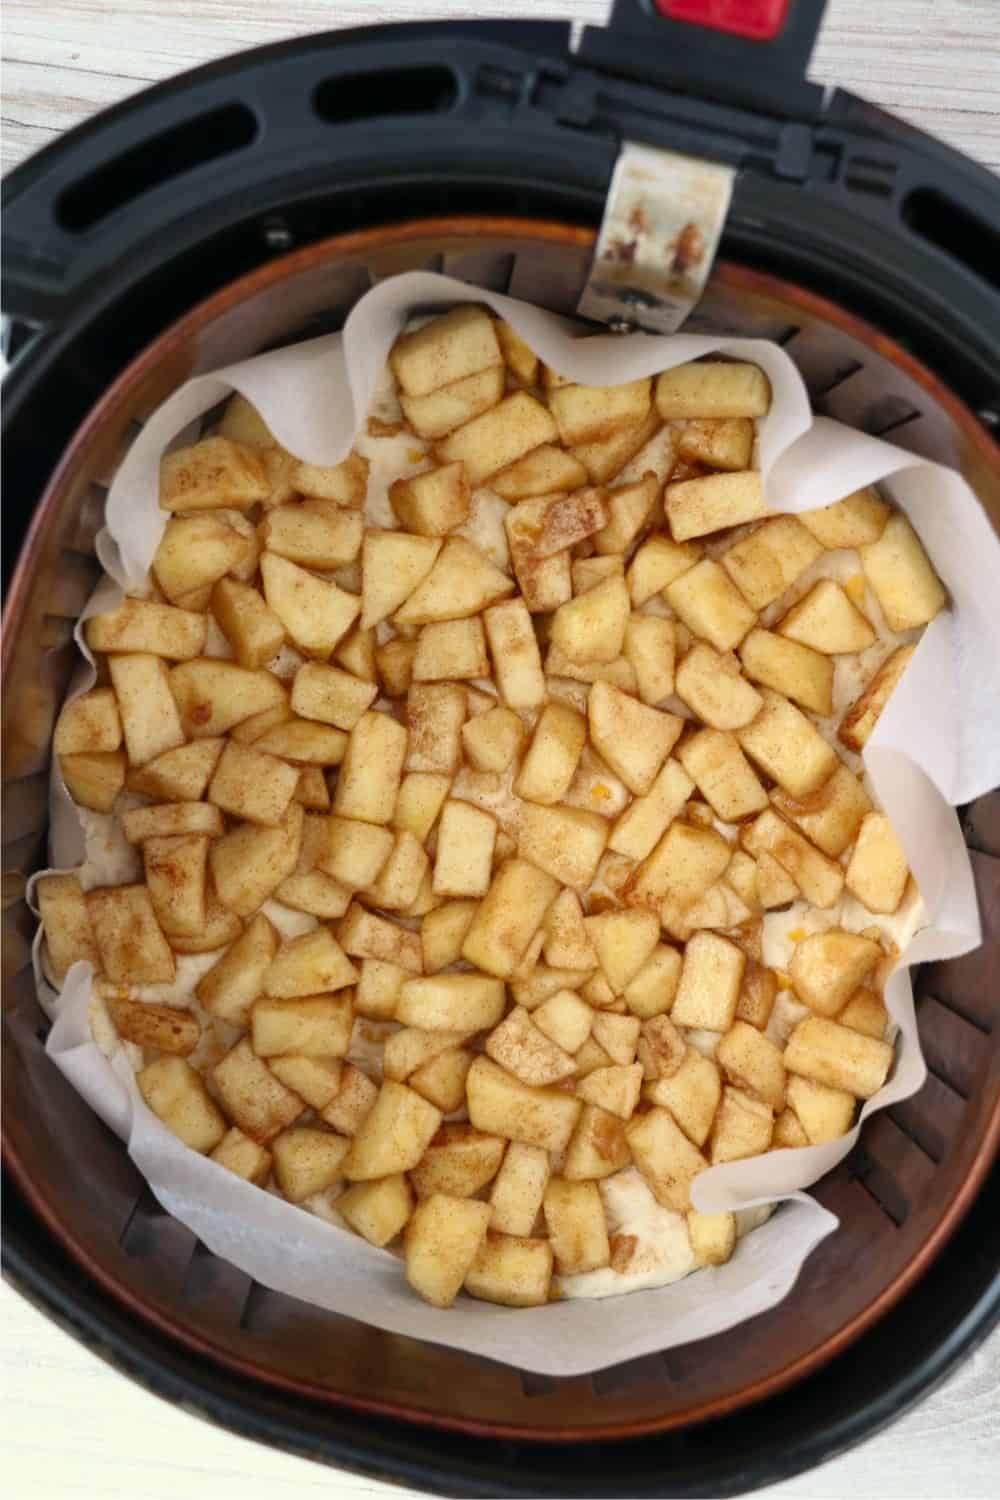 apples being pressed into biscuit layer